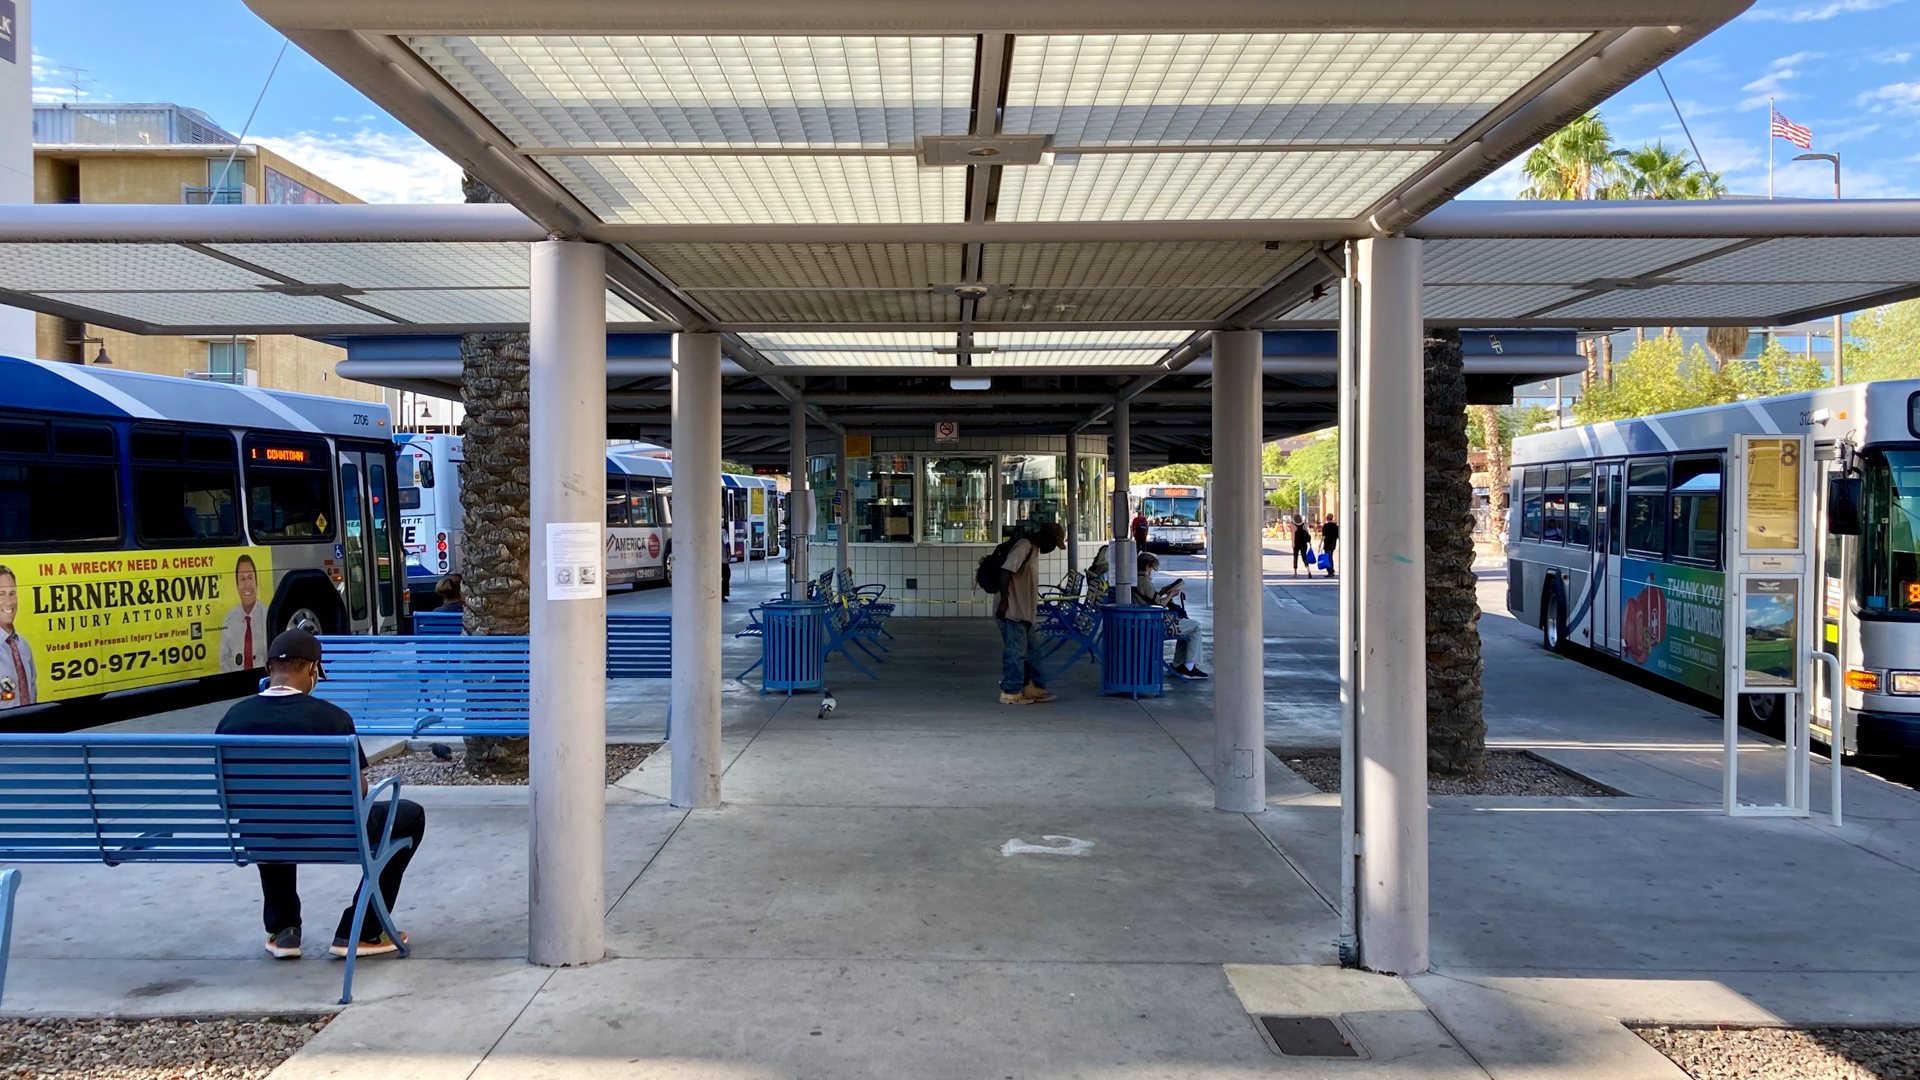 The Ronstadt Transit Center on August 1, 2020.